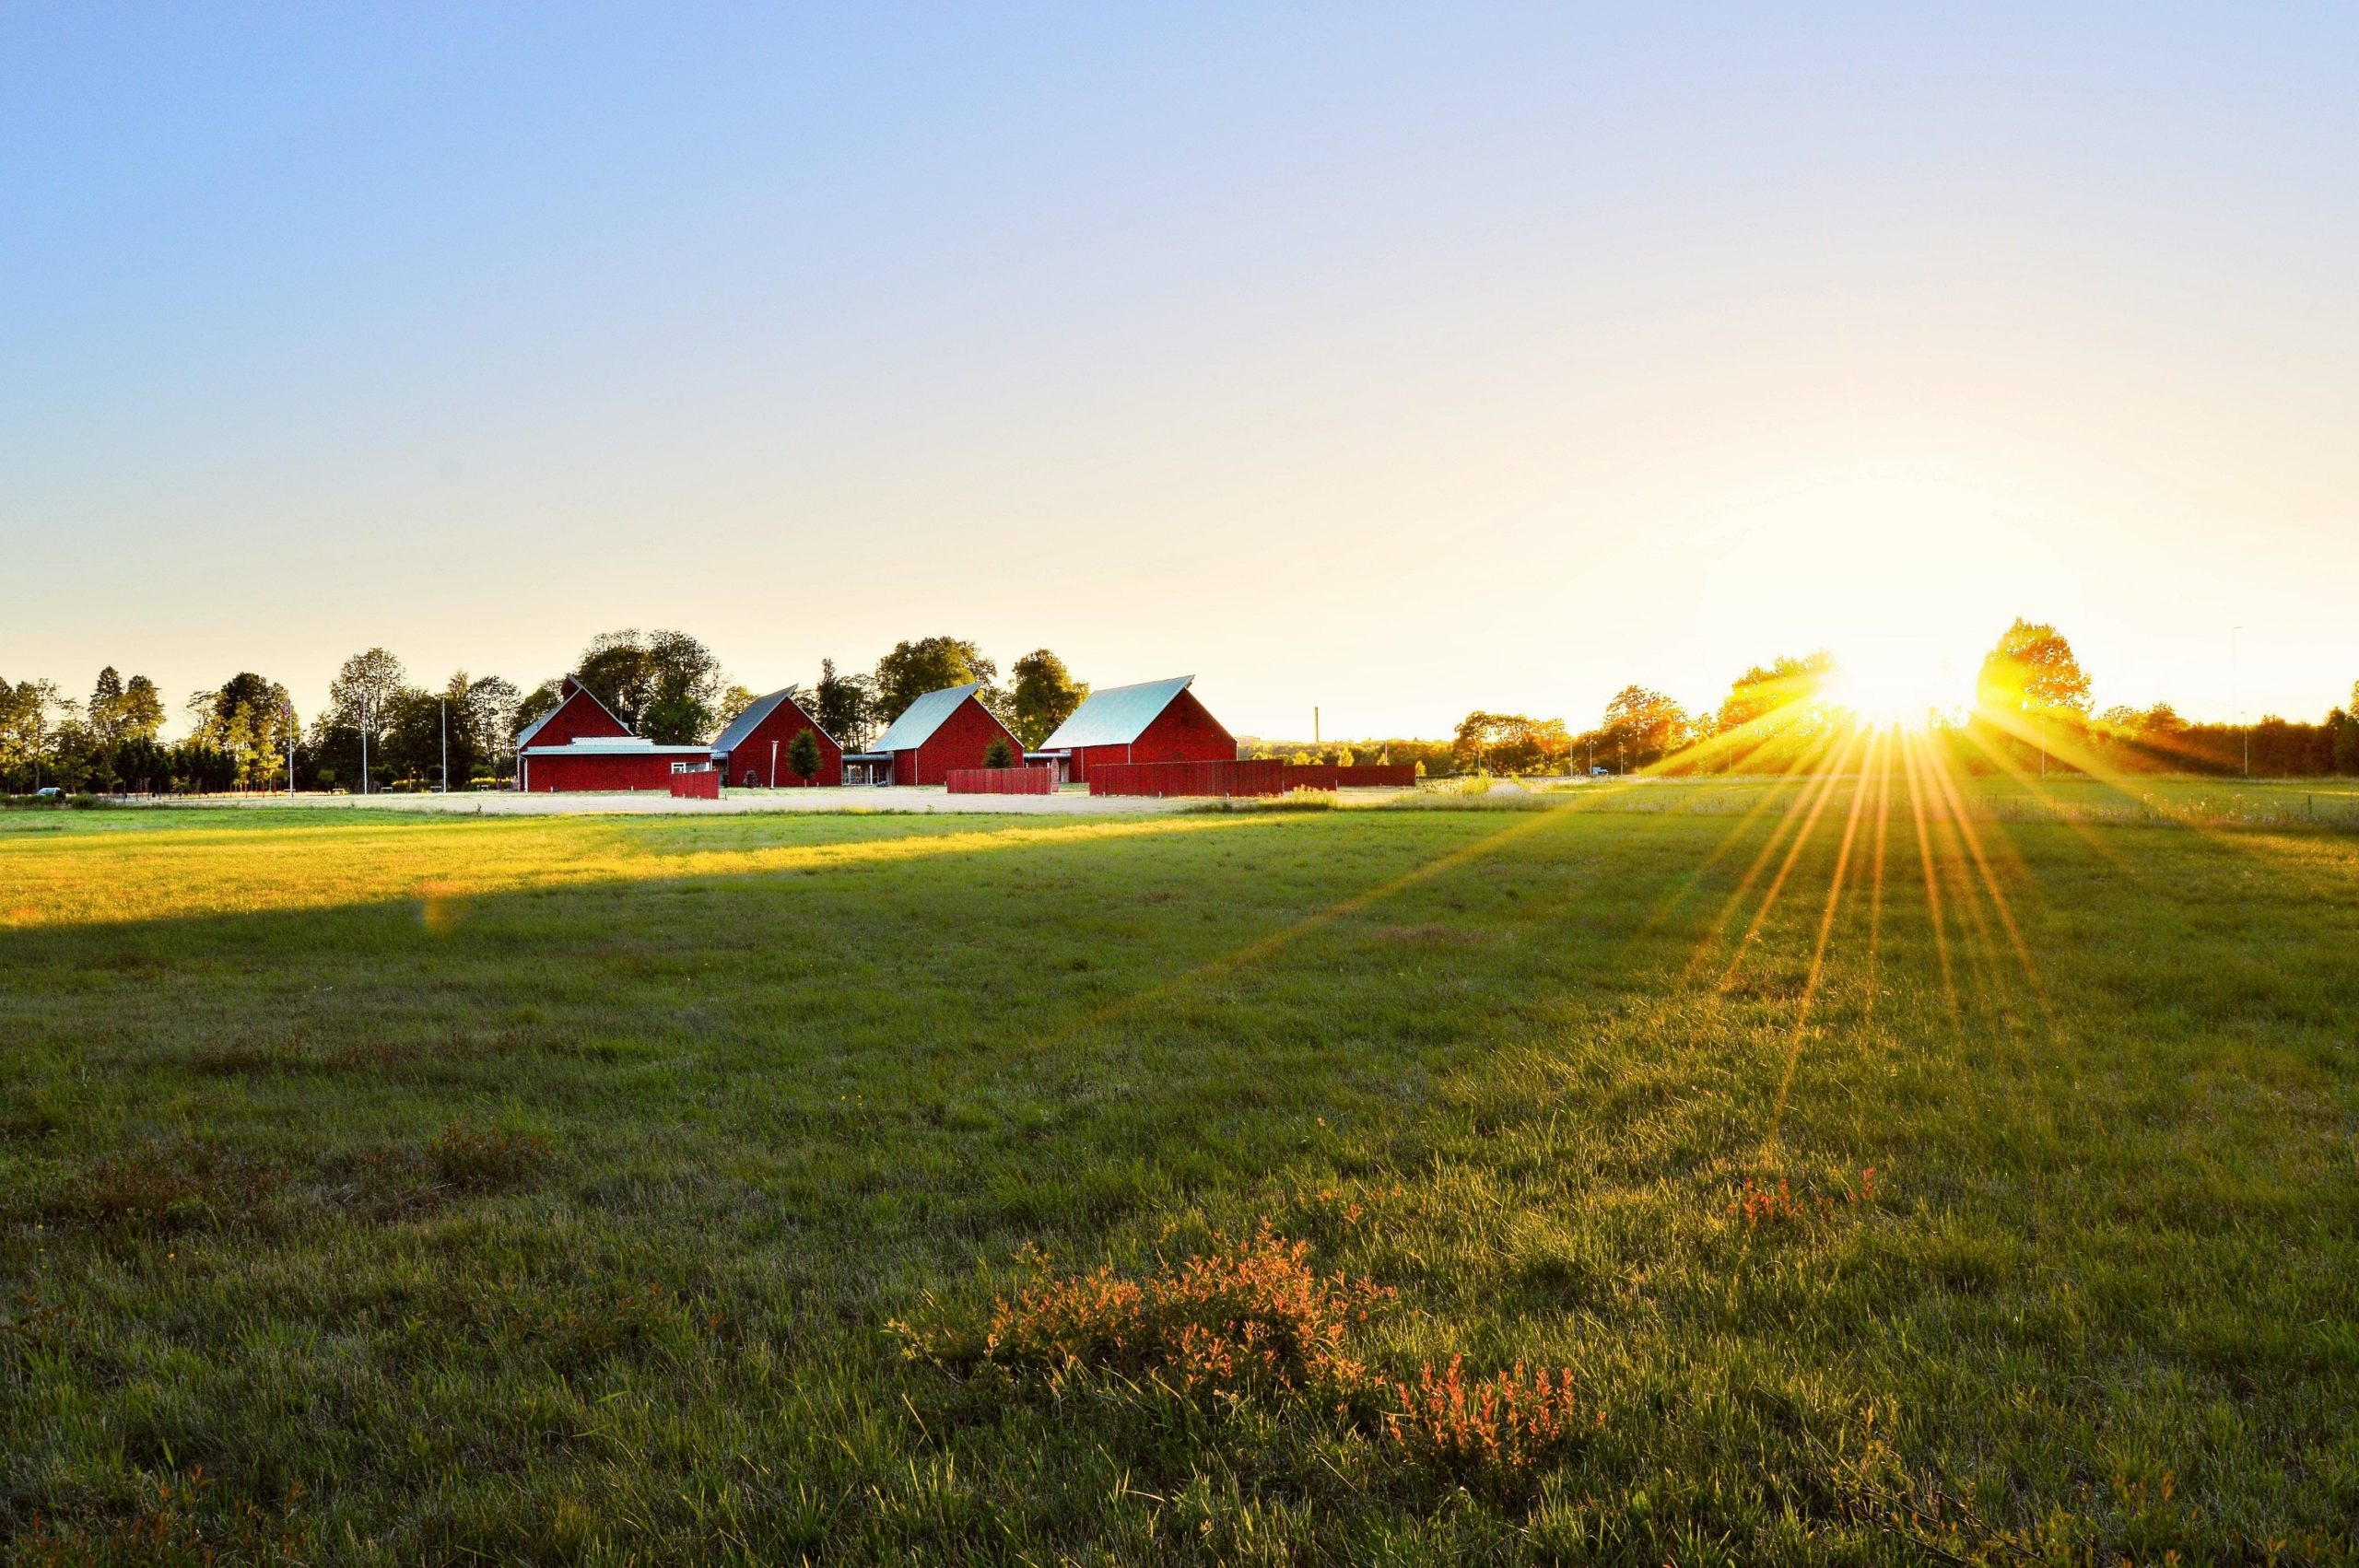 Green Pasture With Four Red Barns and a Beautiful Sunset - Farm Background Wallpaper Pictures